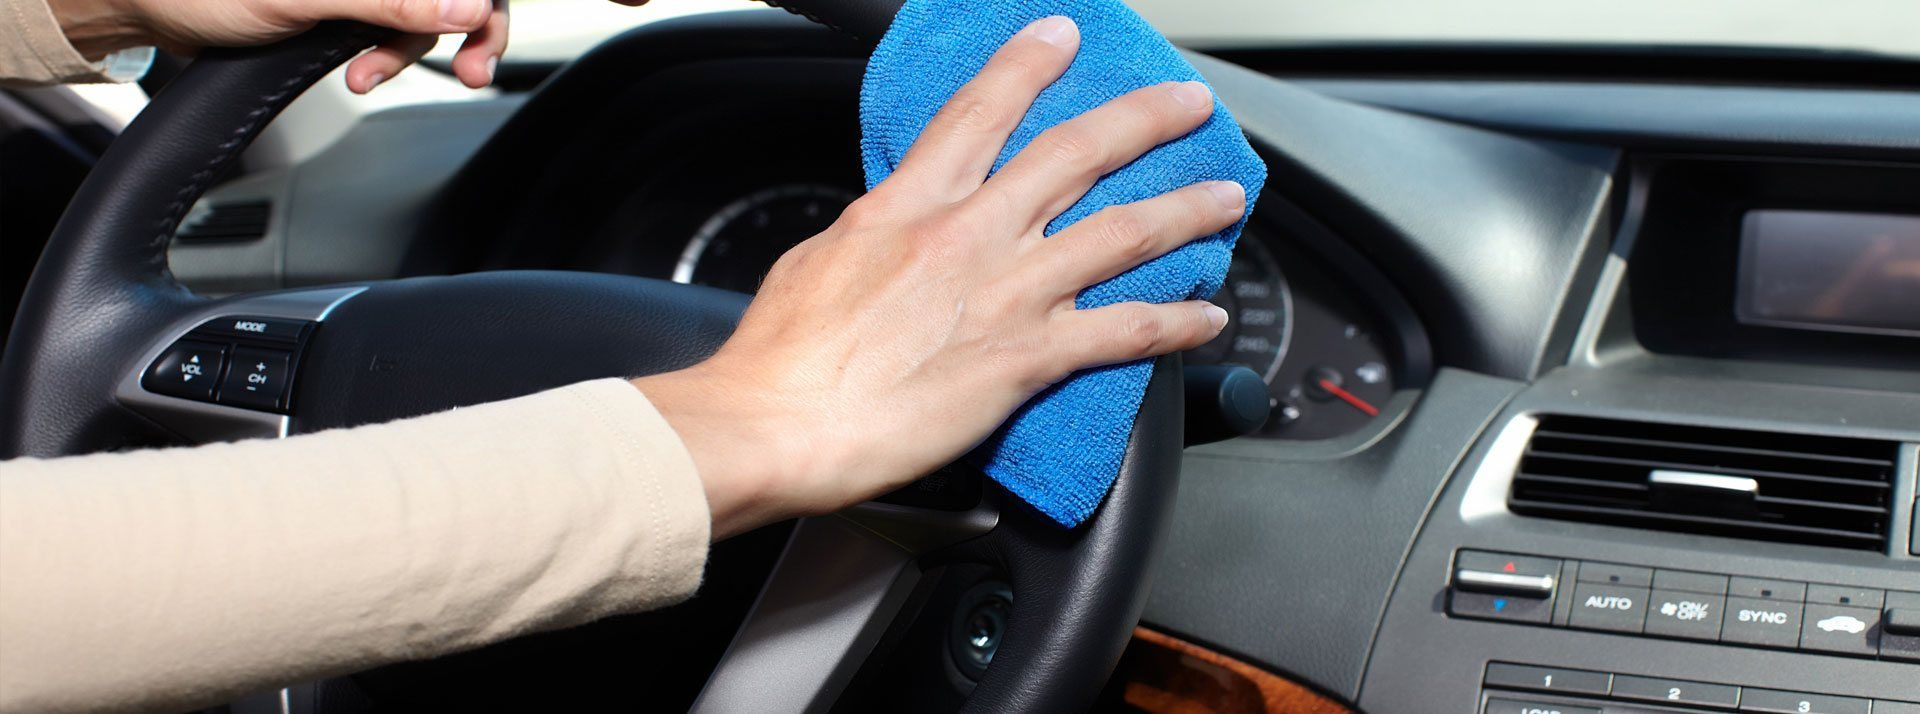 Looking for cardrycleaning Carcleaningservices